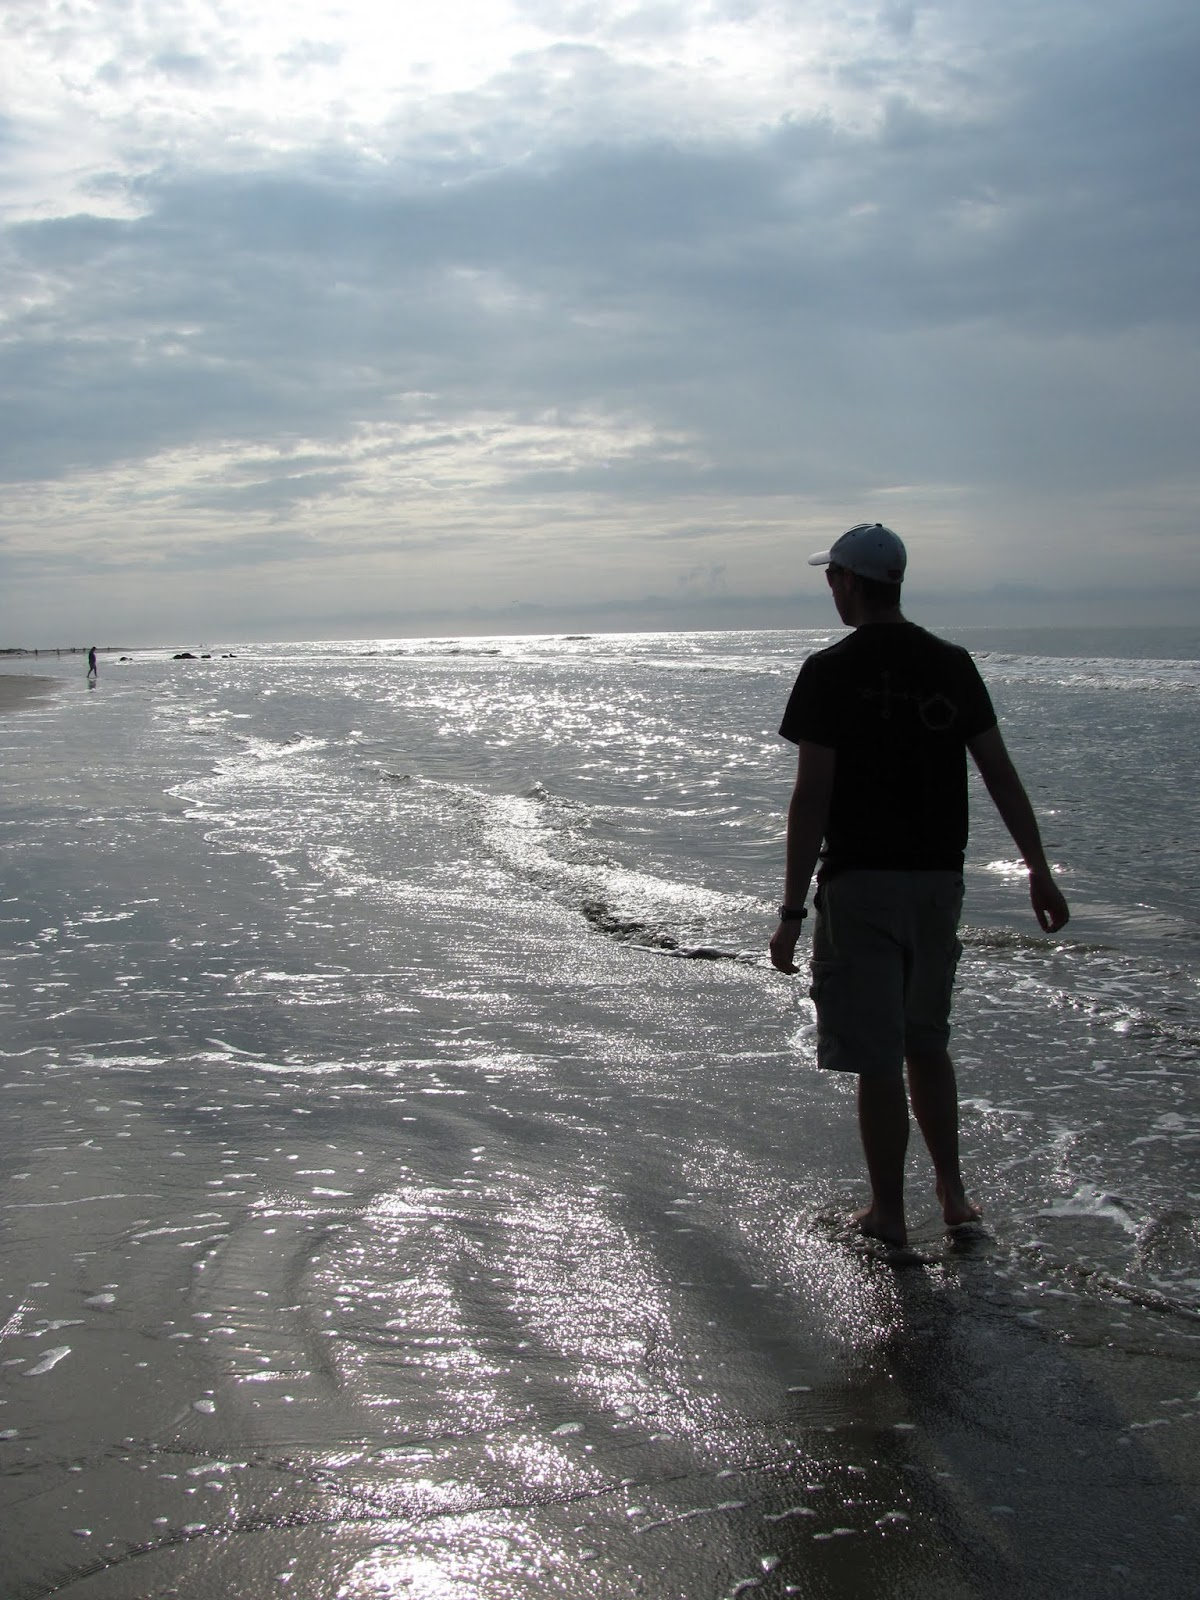 Wading in the surf near Charleston, SC